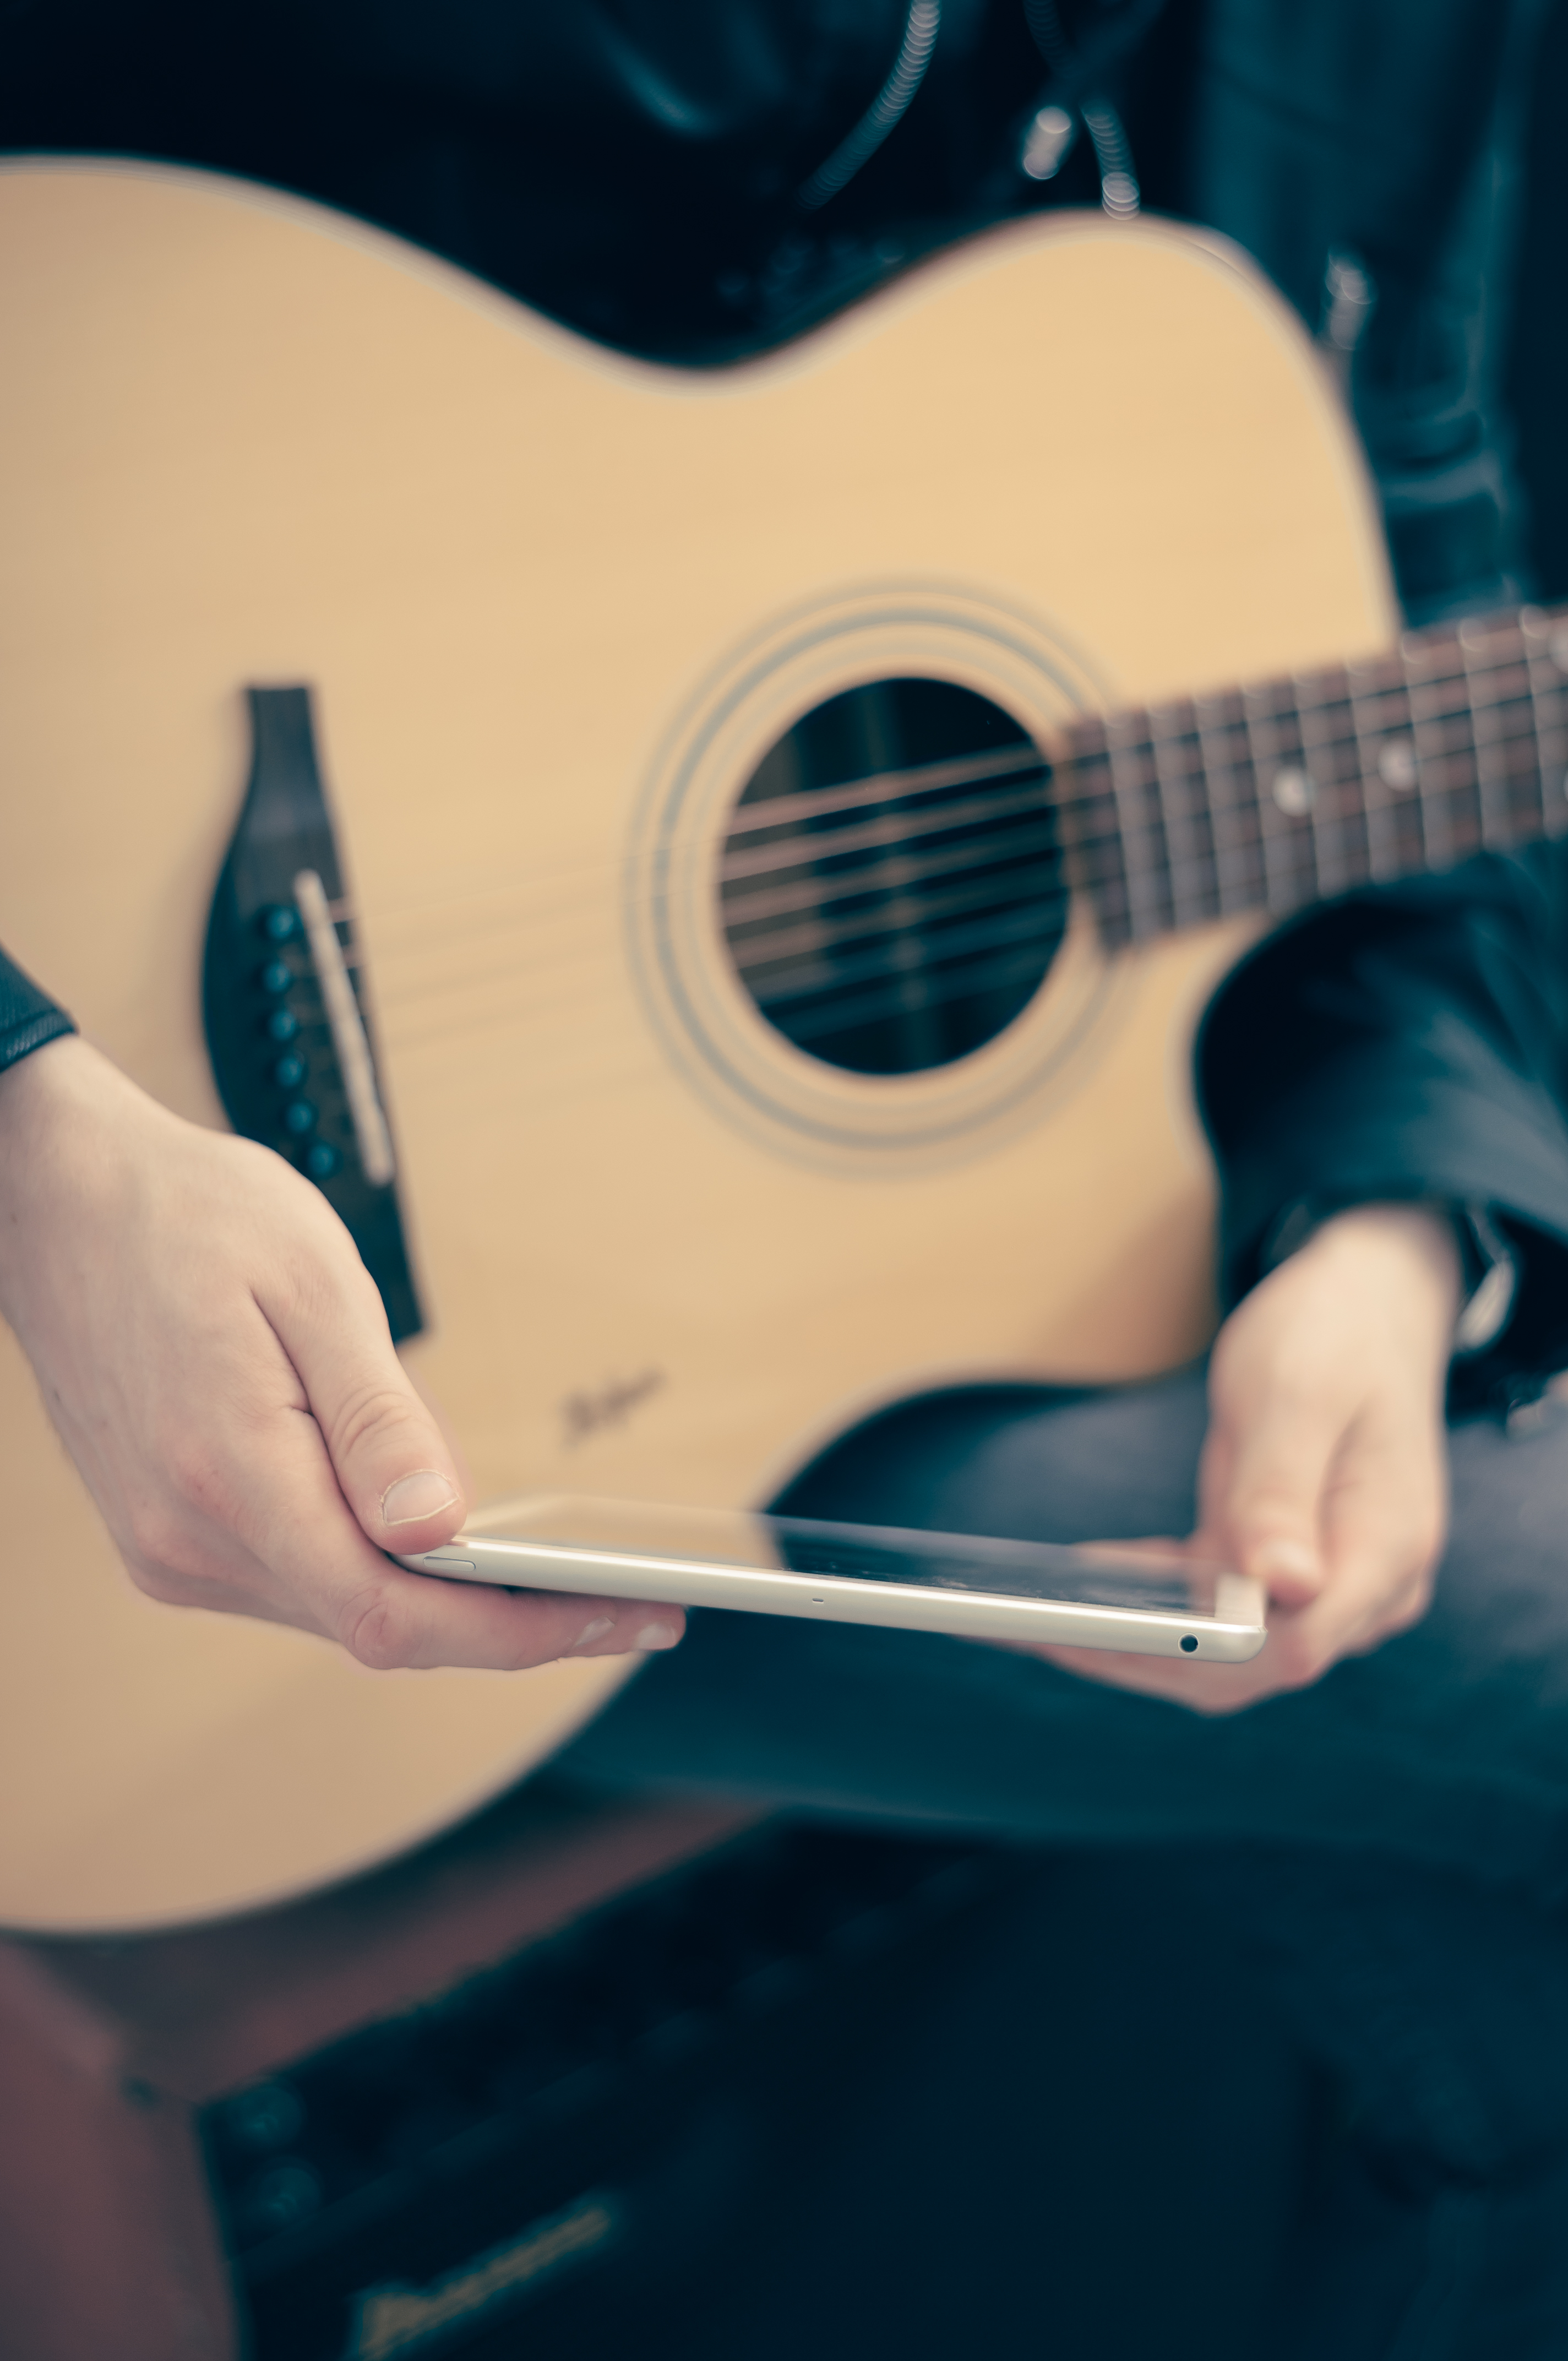 person with guitar on lap holding tablet